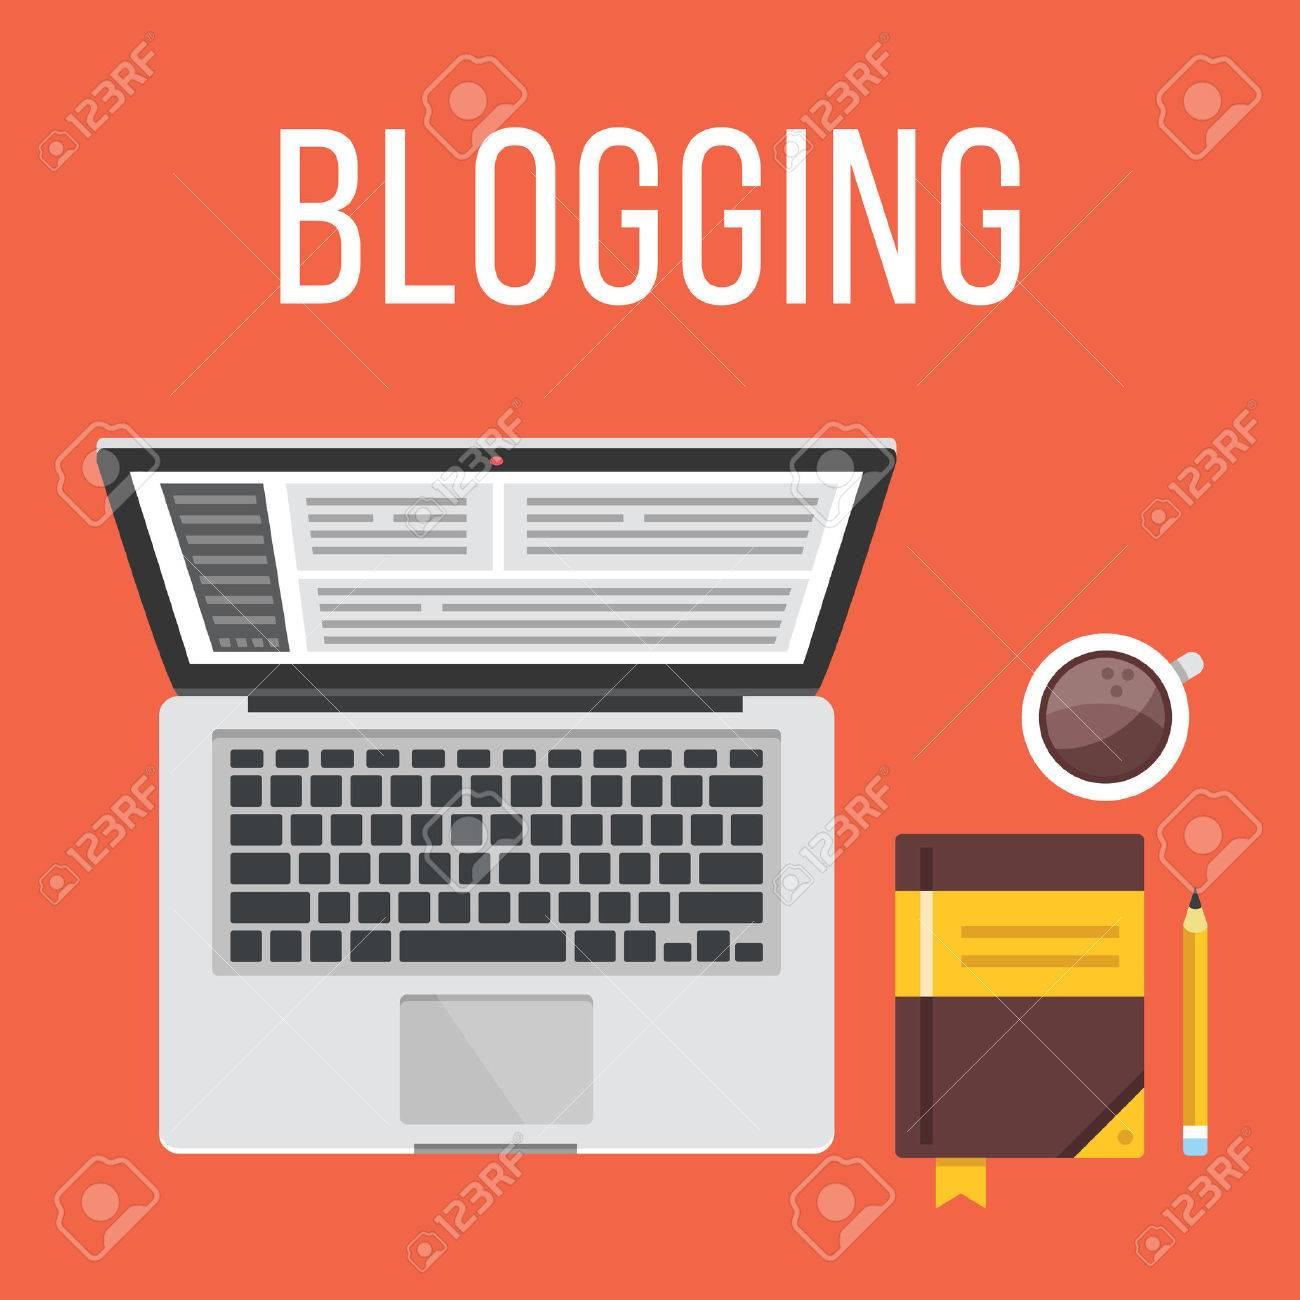 Blogging. Laptop, notepad, pencil and coffee cup. Top view. Flat design illustration concept - 43279822